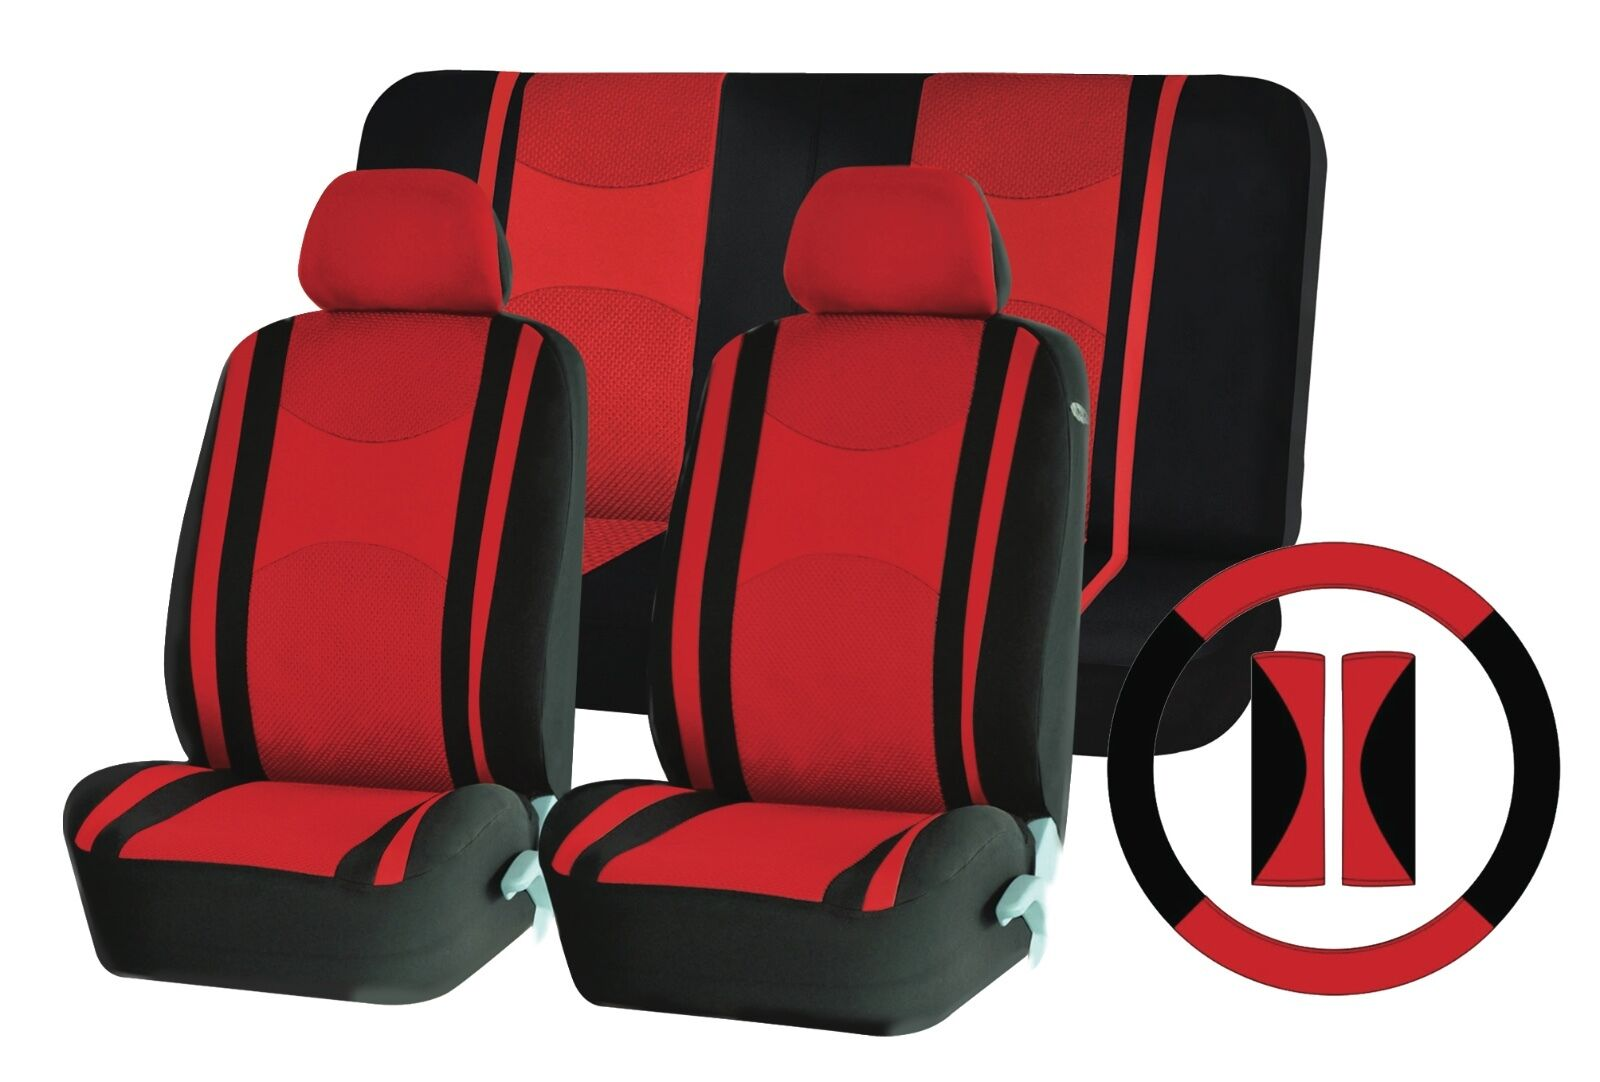 Red Mesh Cloth Car Seat Cover Steering Glove fit Hyundai Getz Coupe i10 i20 ix35